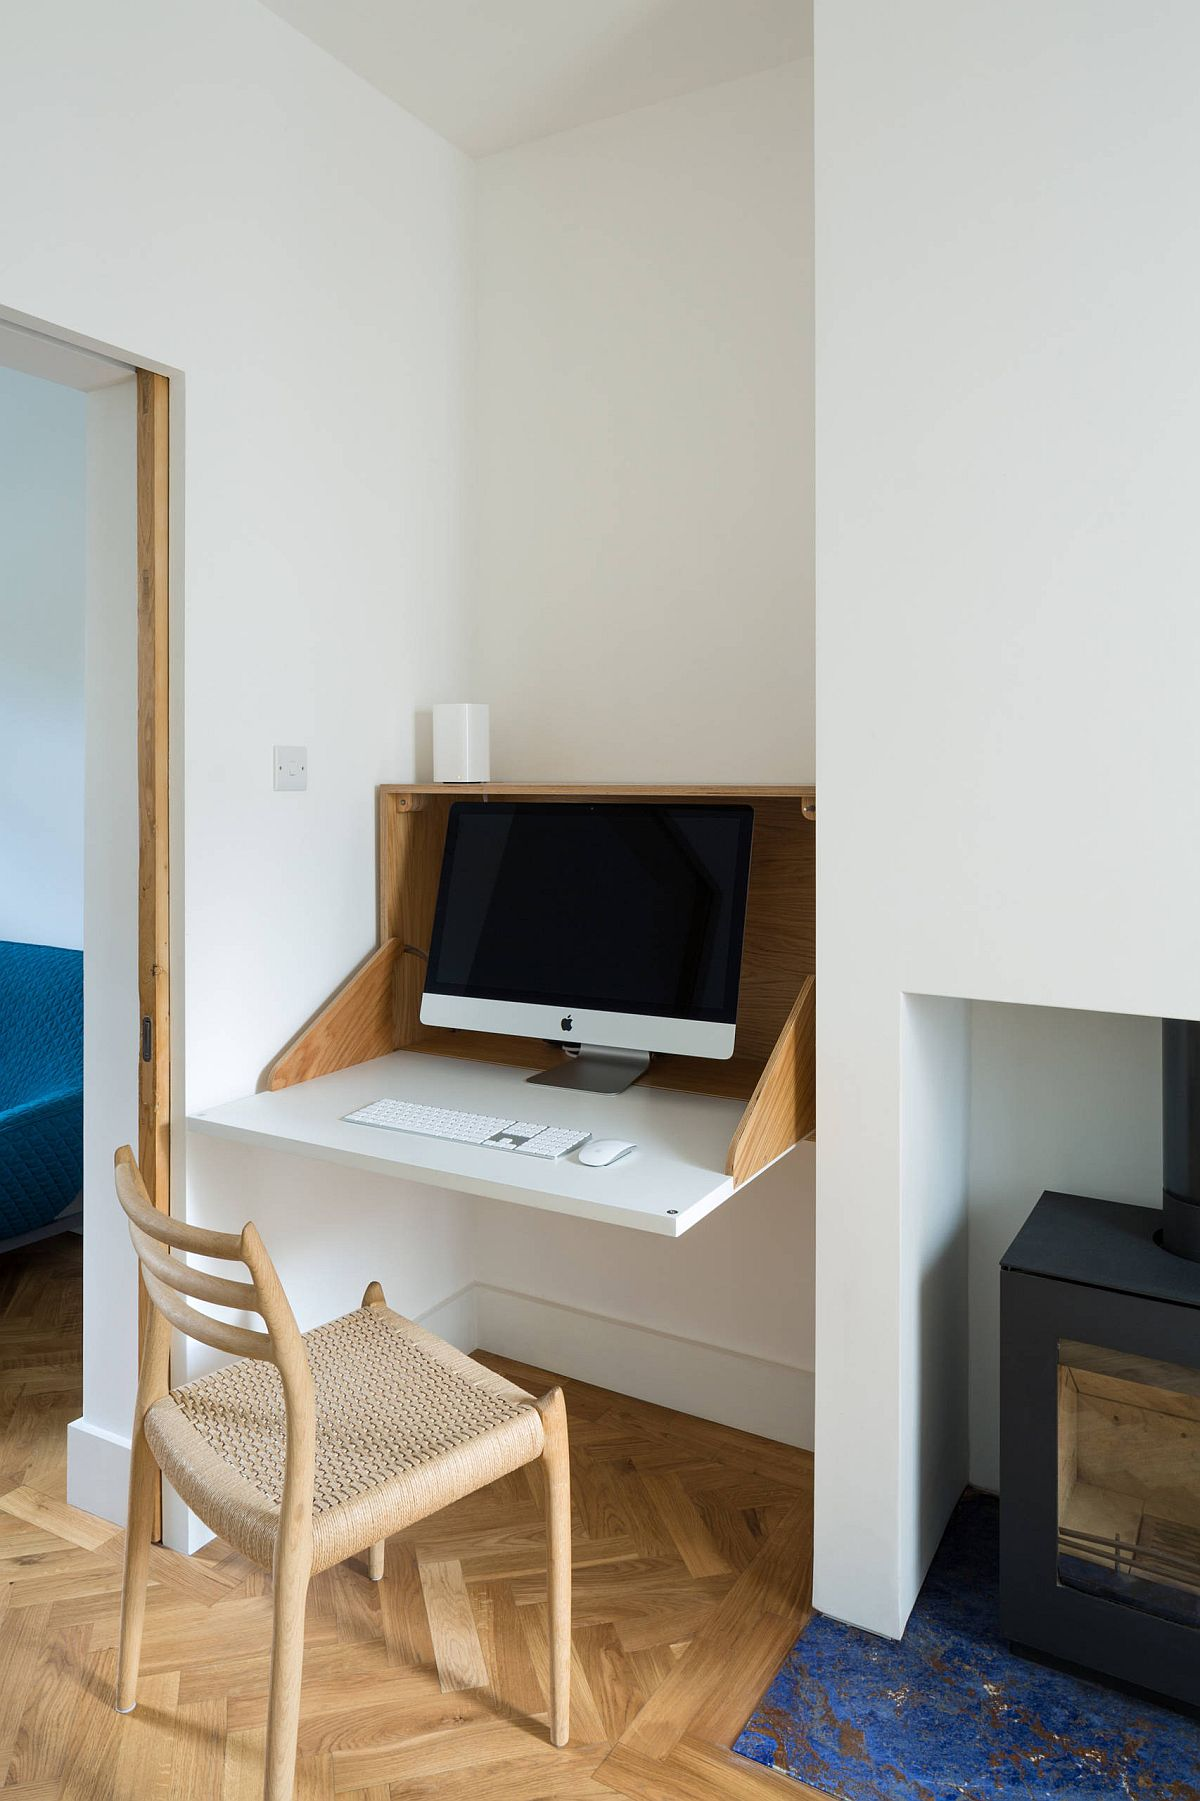 Small niche in the hallway, living room or the bedroom can be turned into a workspace with folding desk